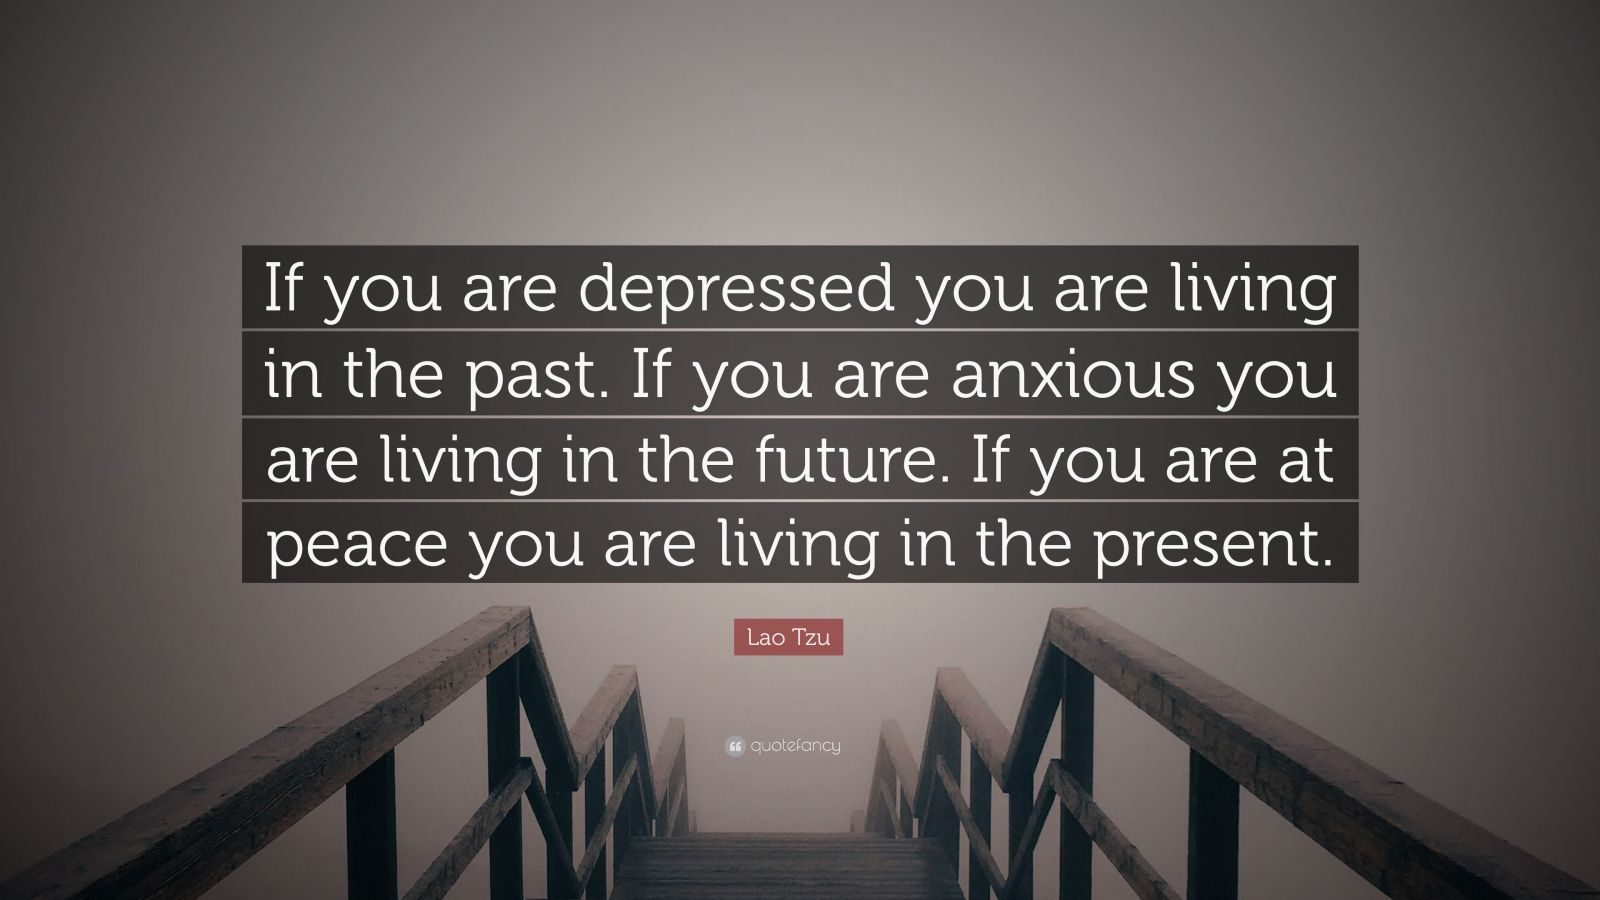 Inspirational Quotes For Depression Motivational Quotes 100 Wallpapers  Quotefancy